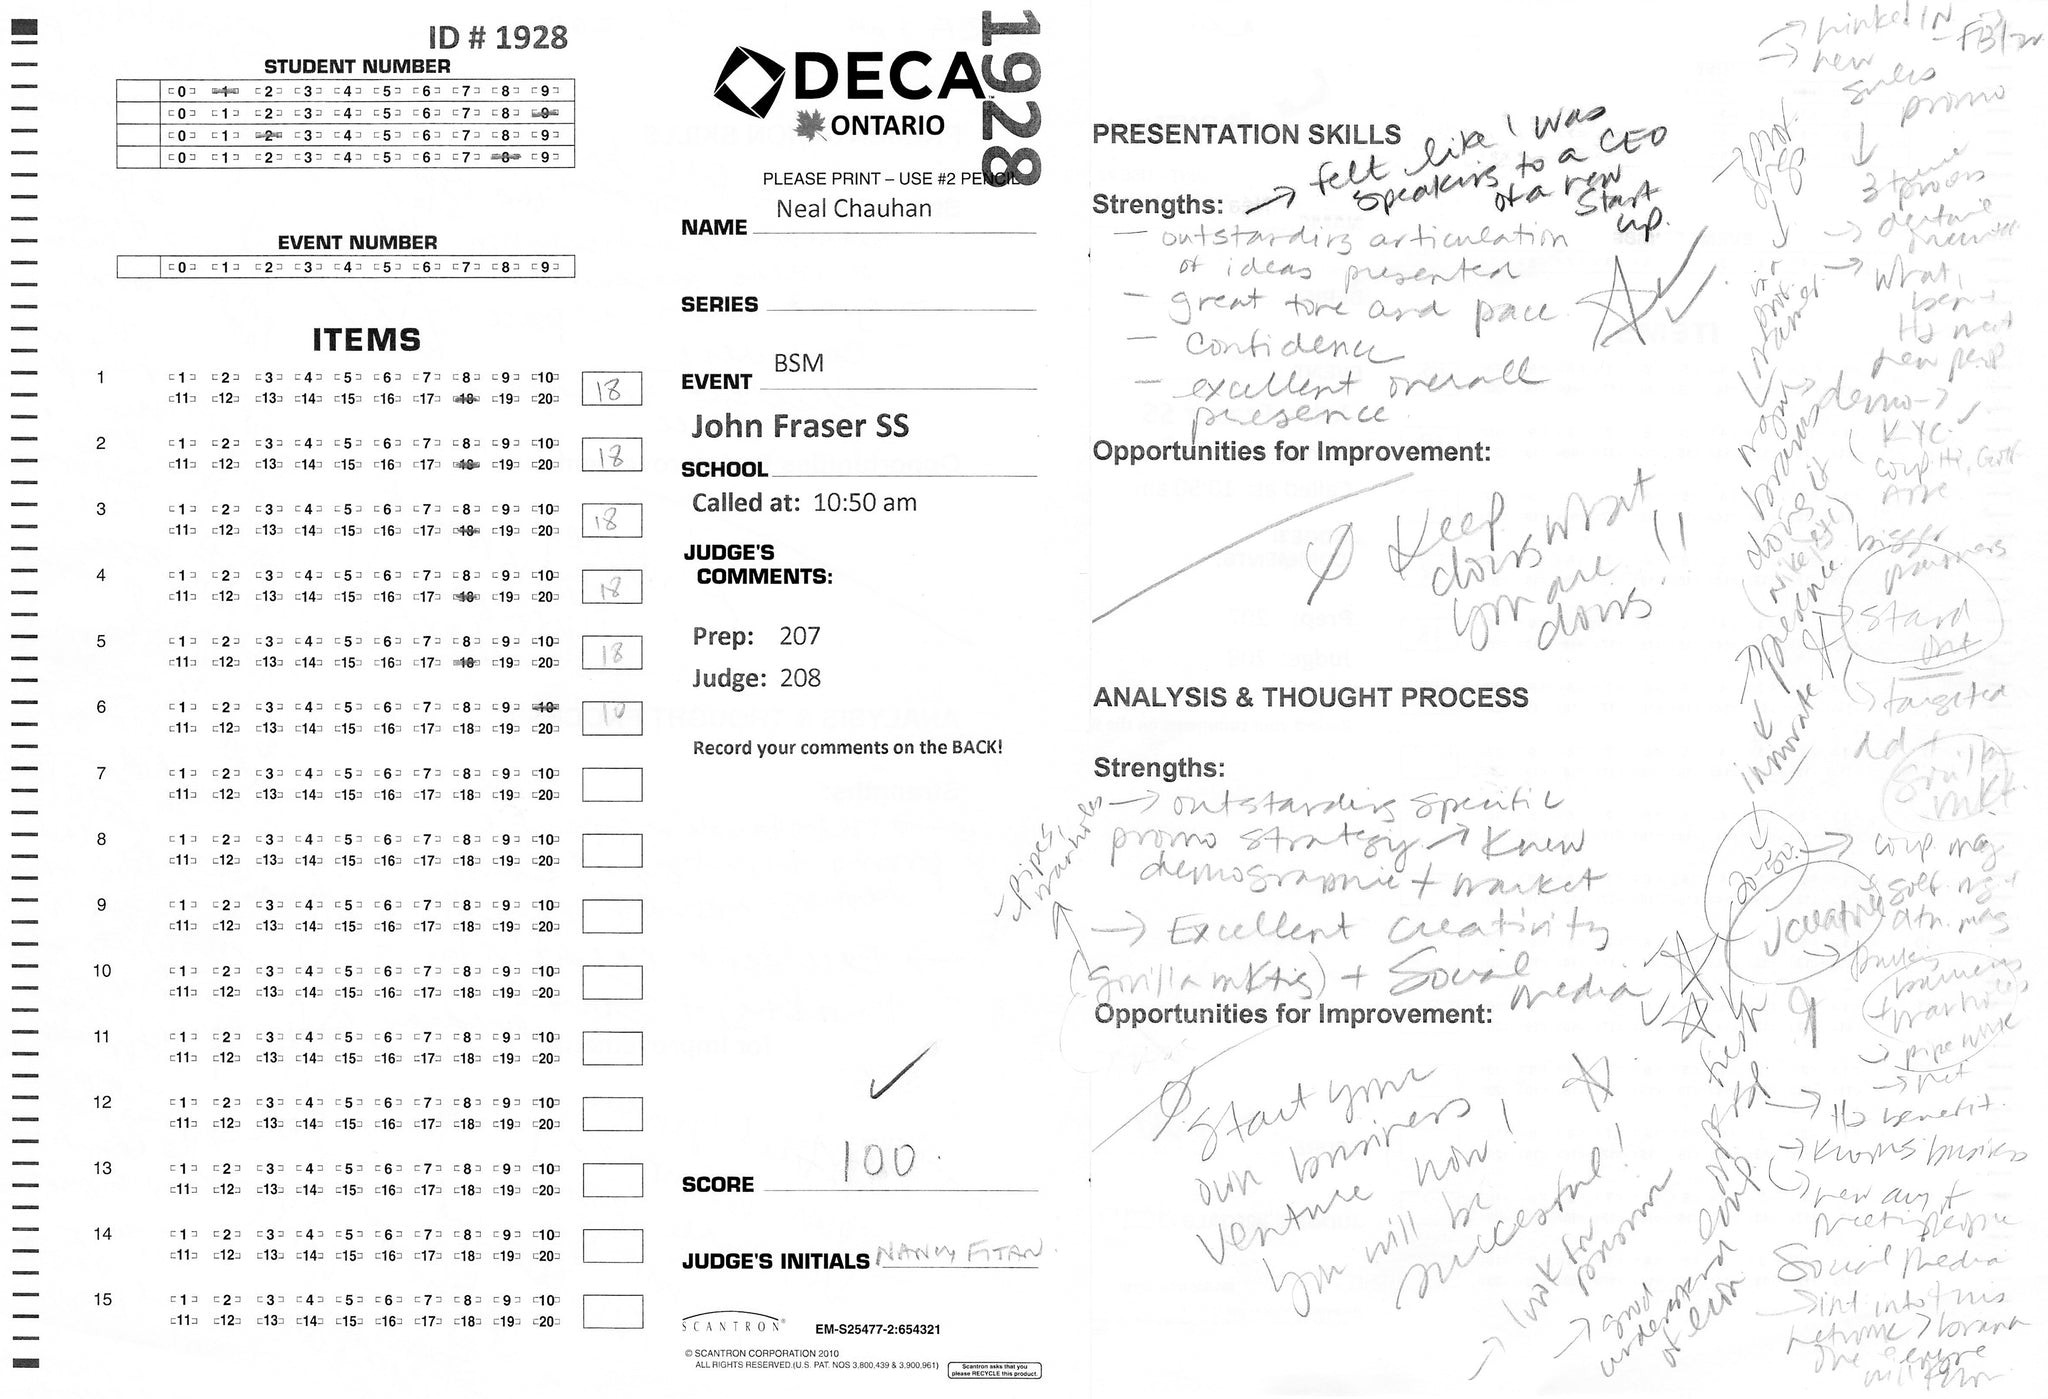 DECA Perfect Scoresheet | Neal Chauhan